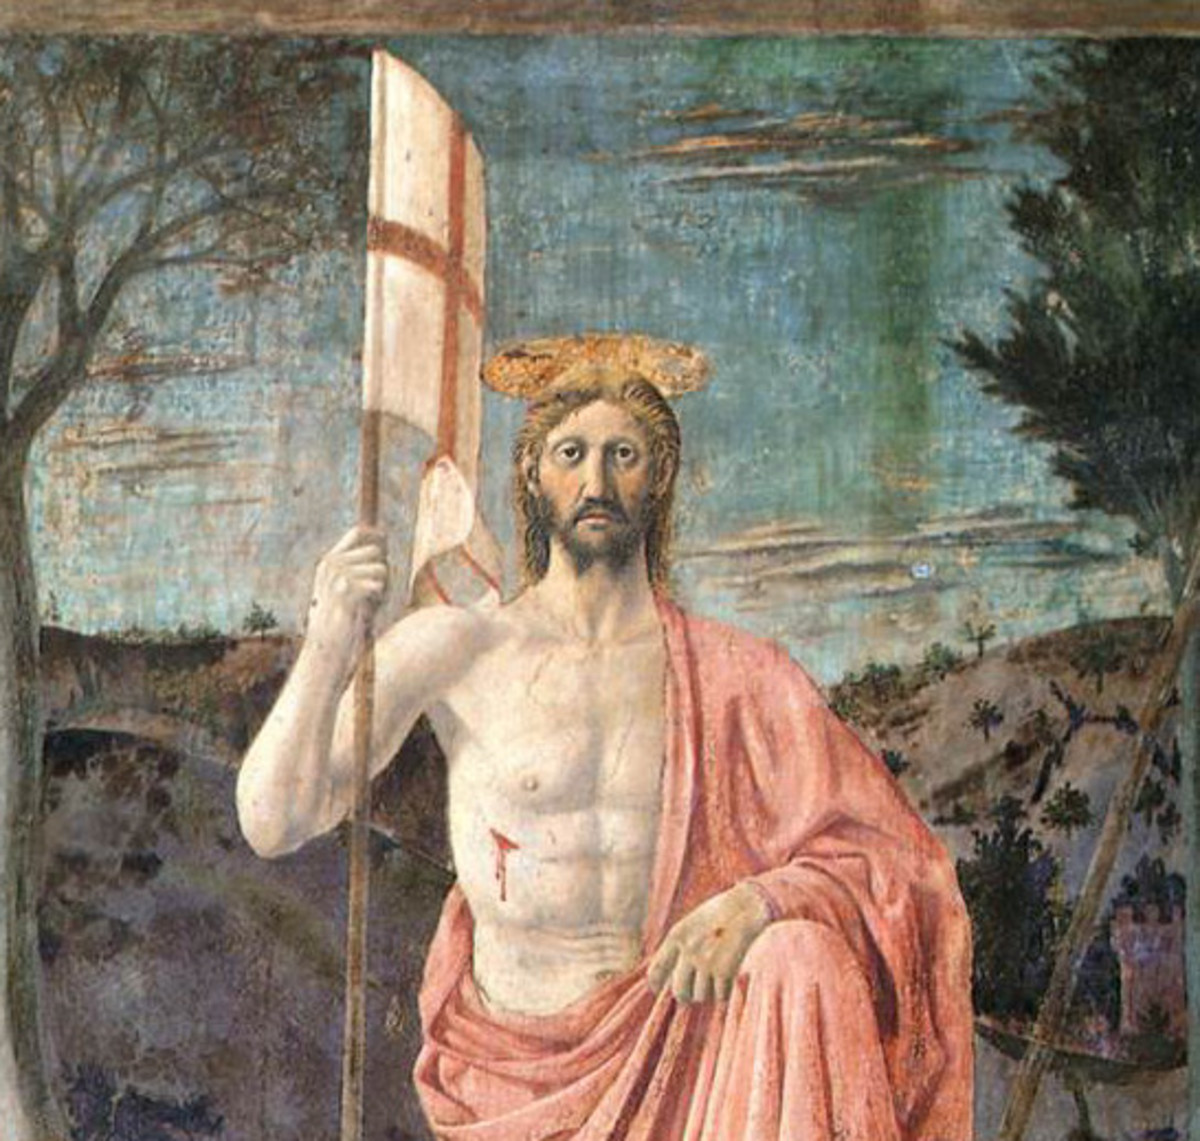 Piero della Francesca's Resurrection and the Captain Clarke Who Did not Bomb it